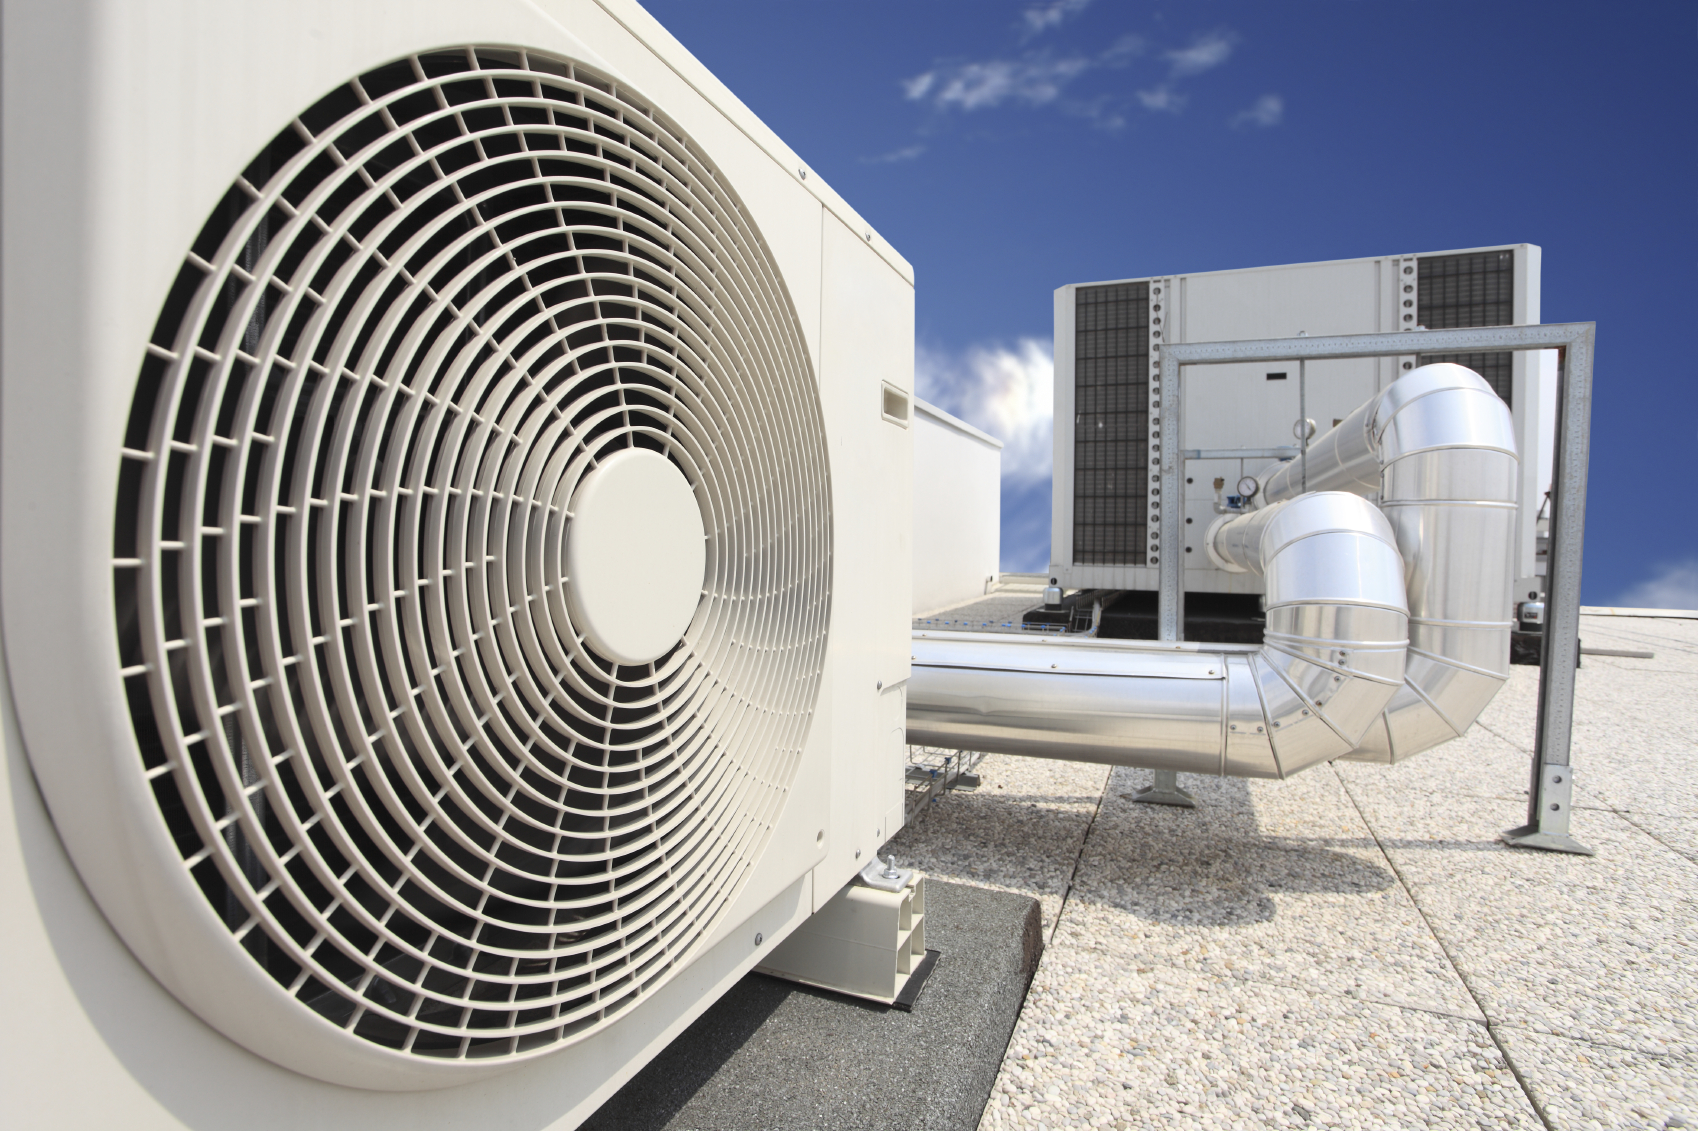 Wilkes Barre, PA AIR CONDITIONING SYSTEMS   HVAC